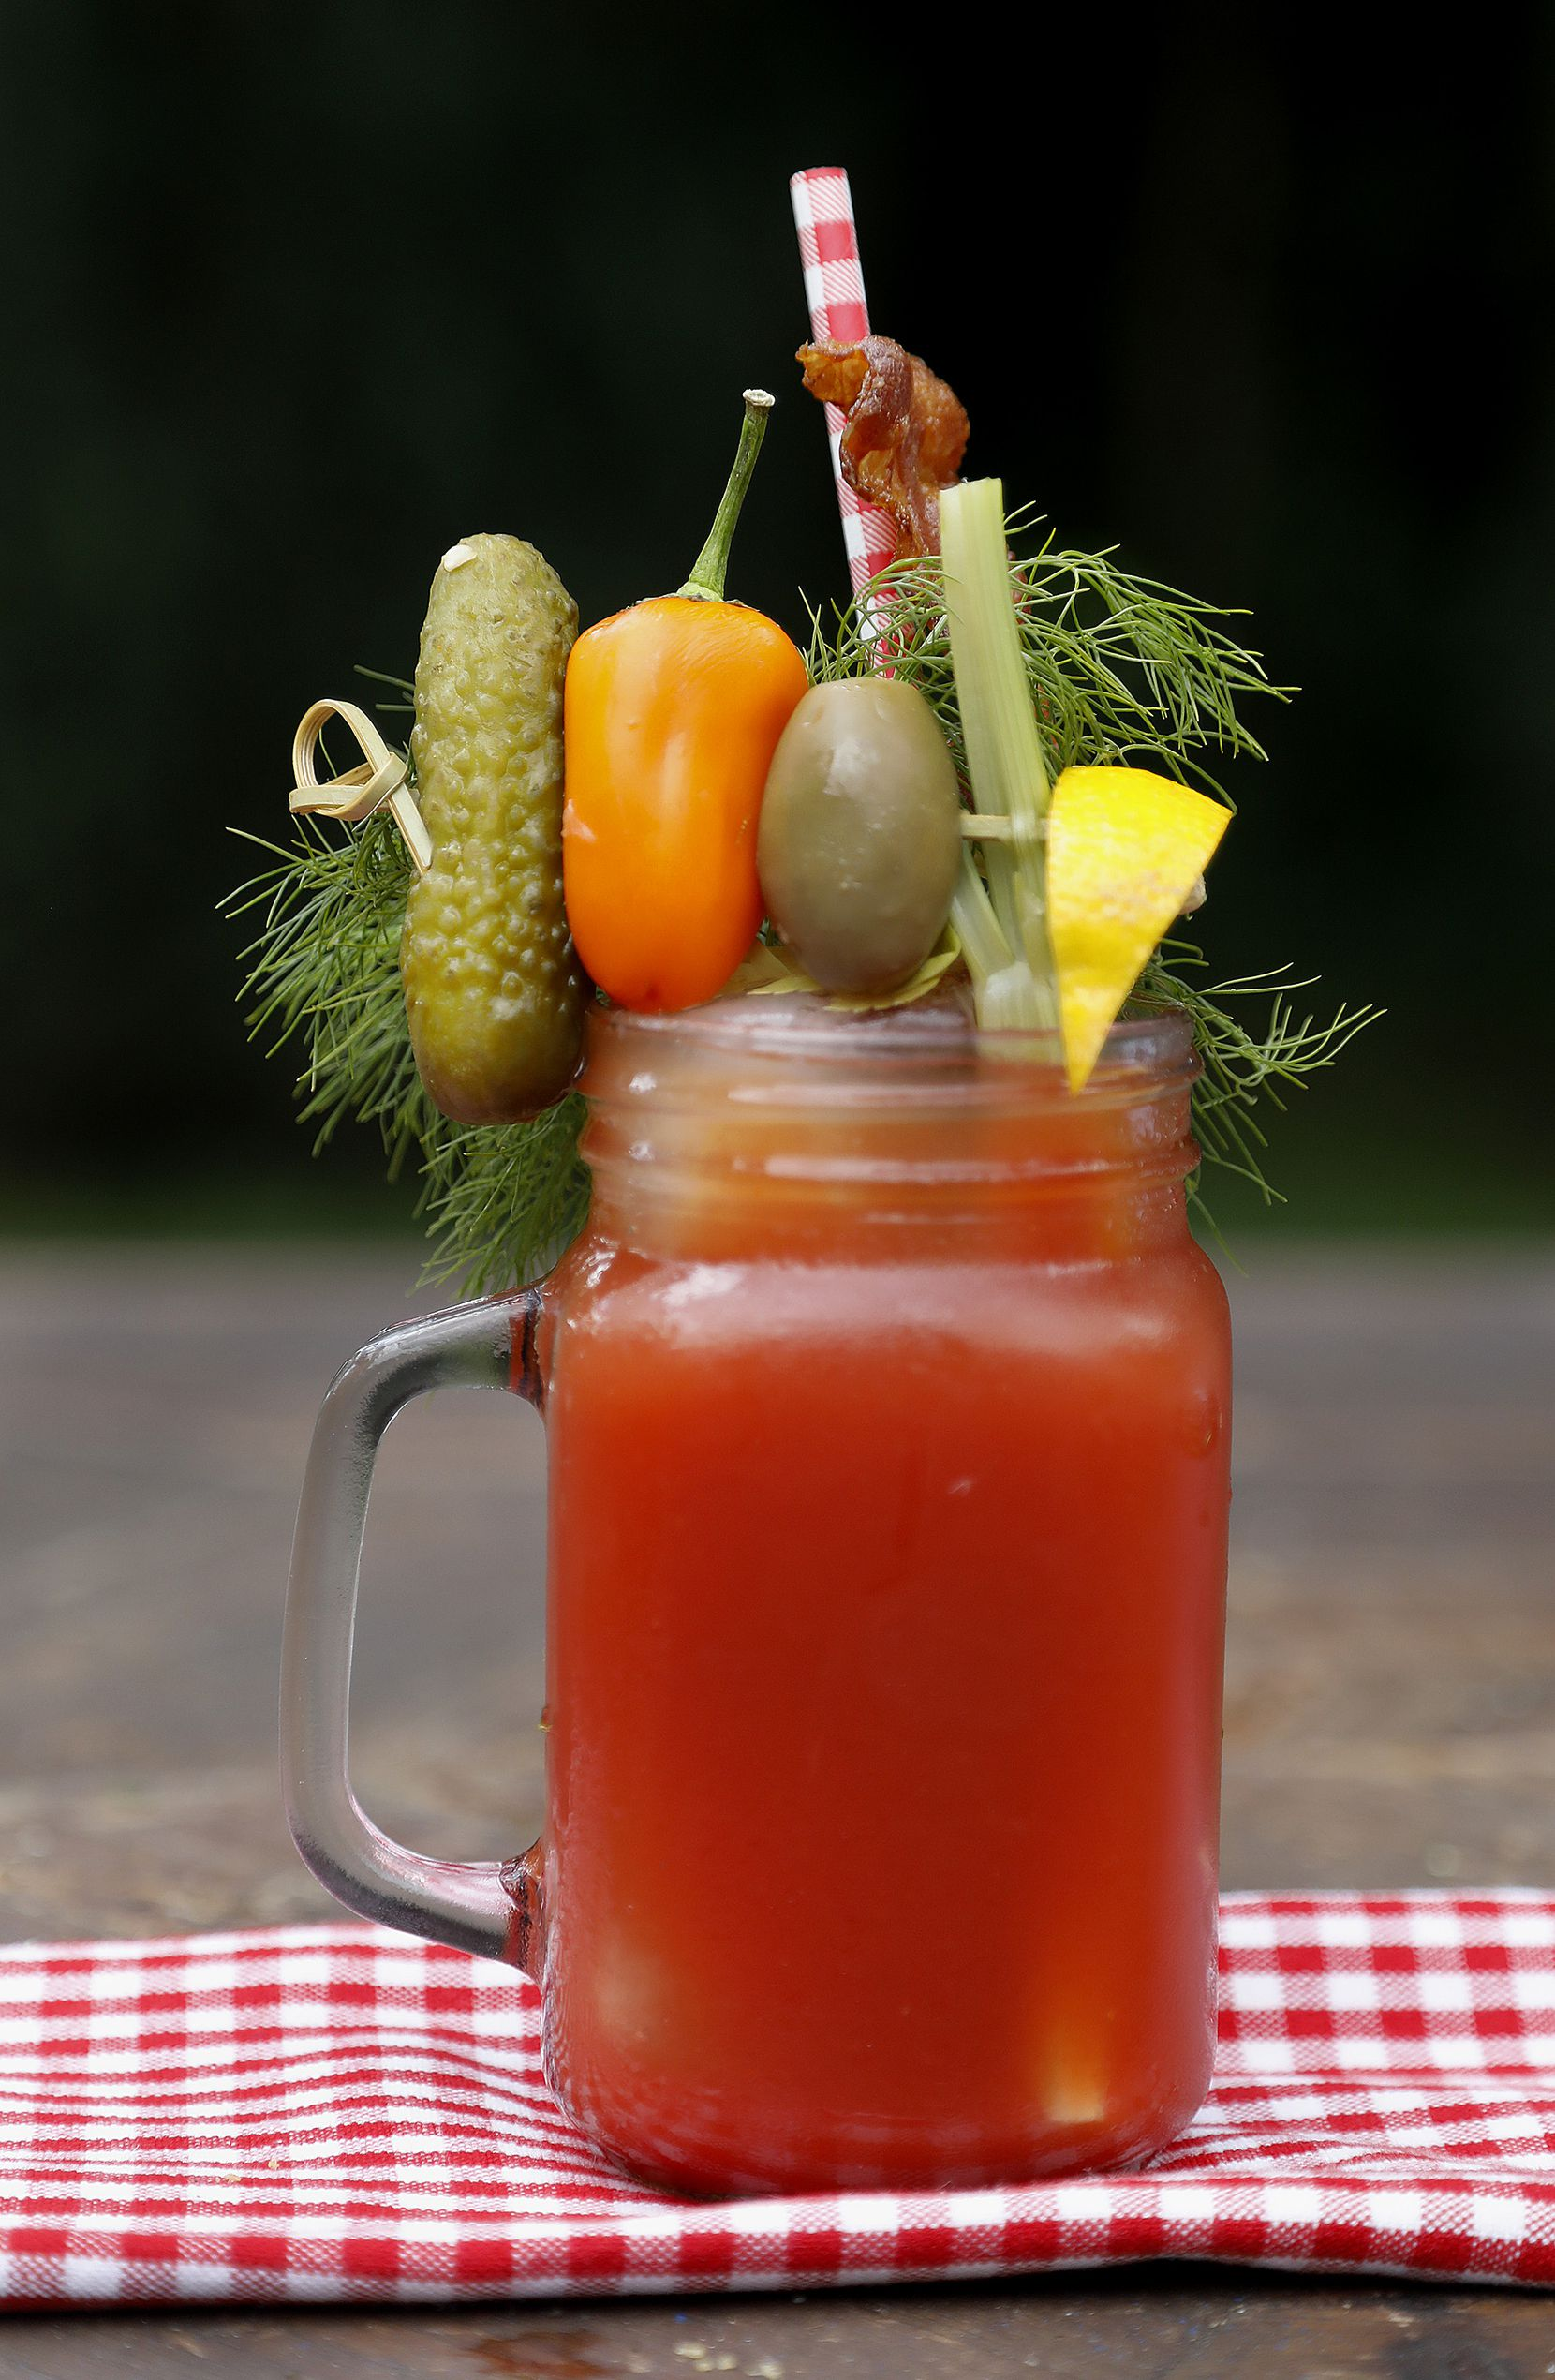 as part of pickled recipes on Tuesday, June 29, 2021. (Stewart F. House/Special Contributor)